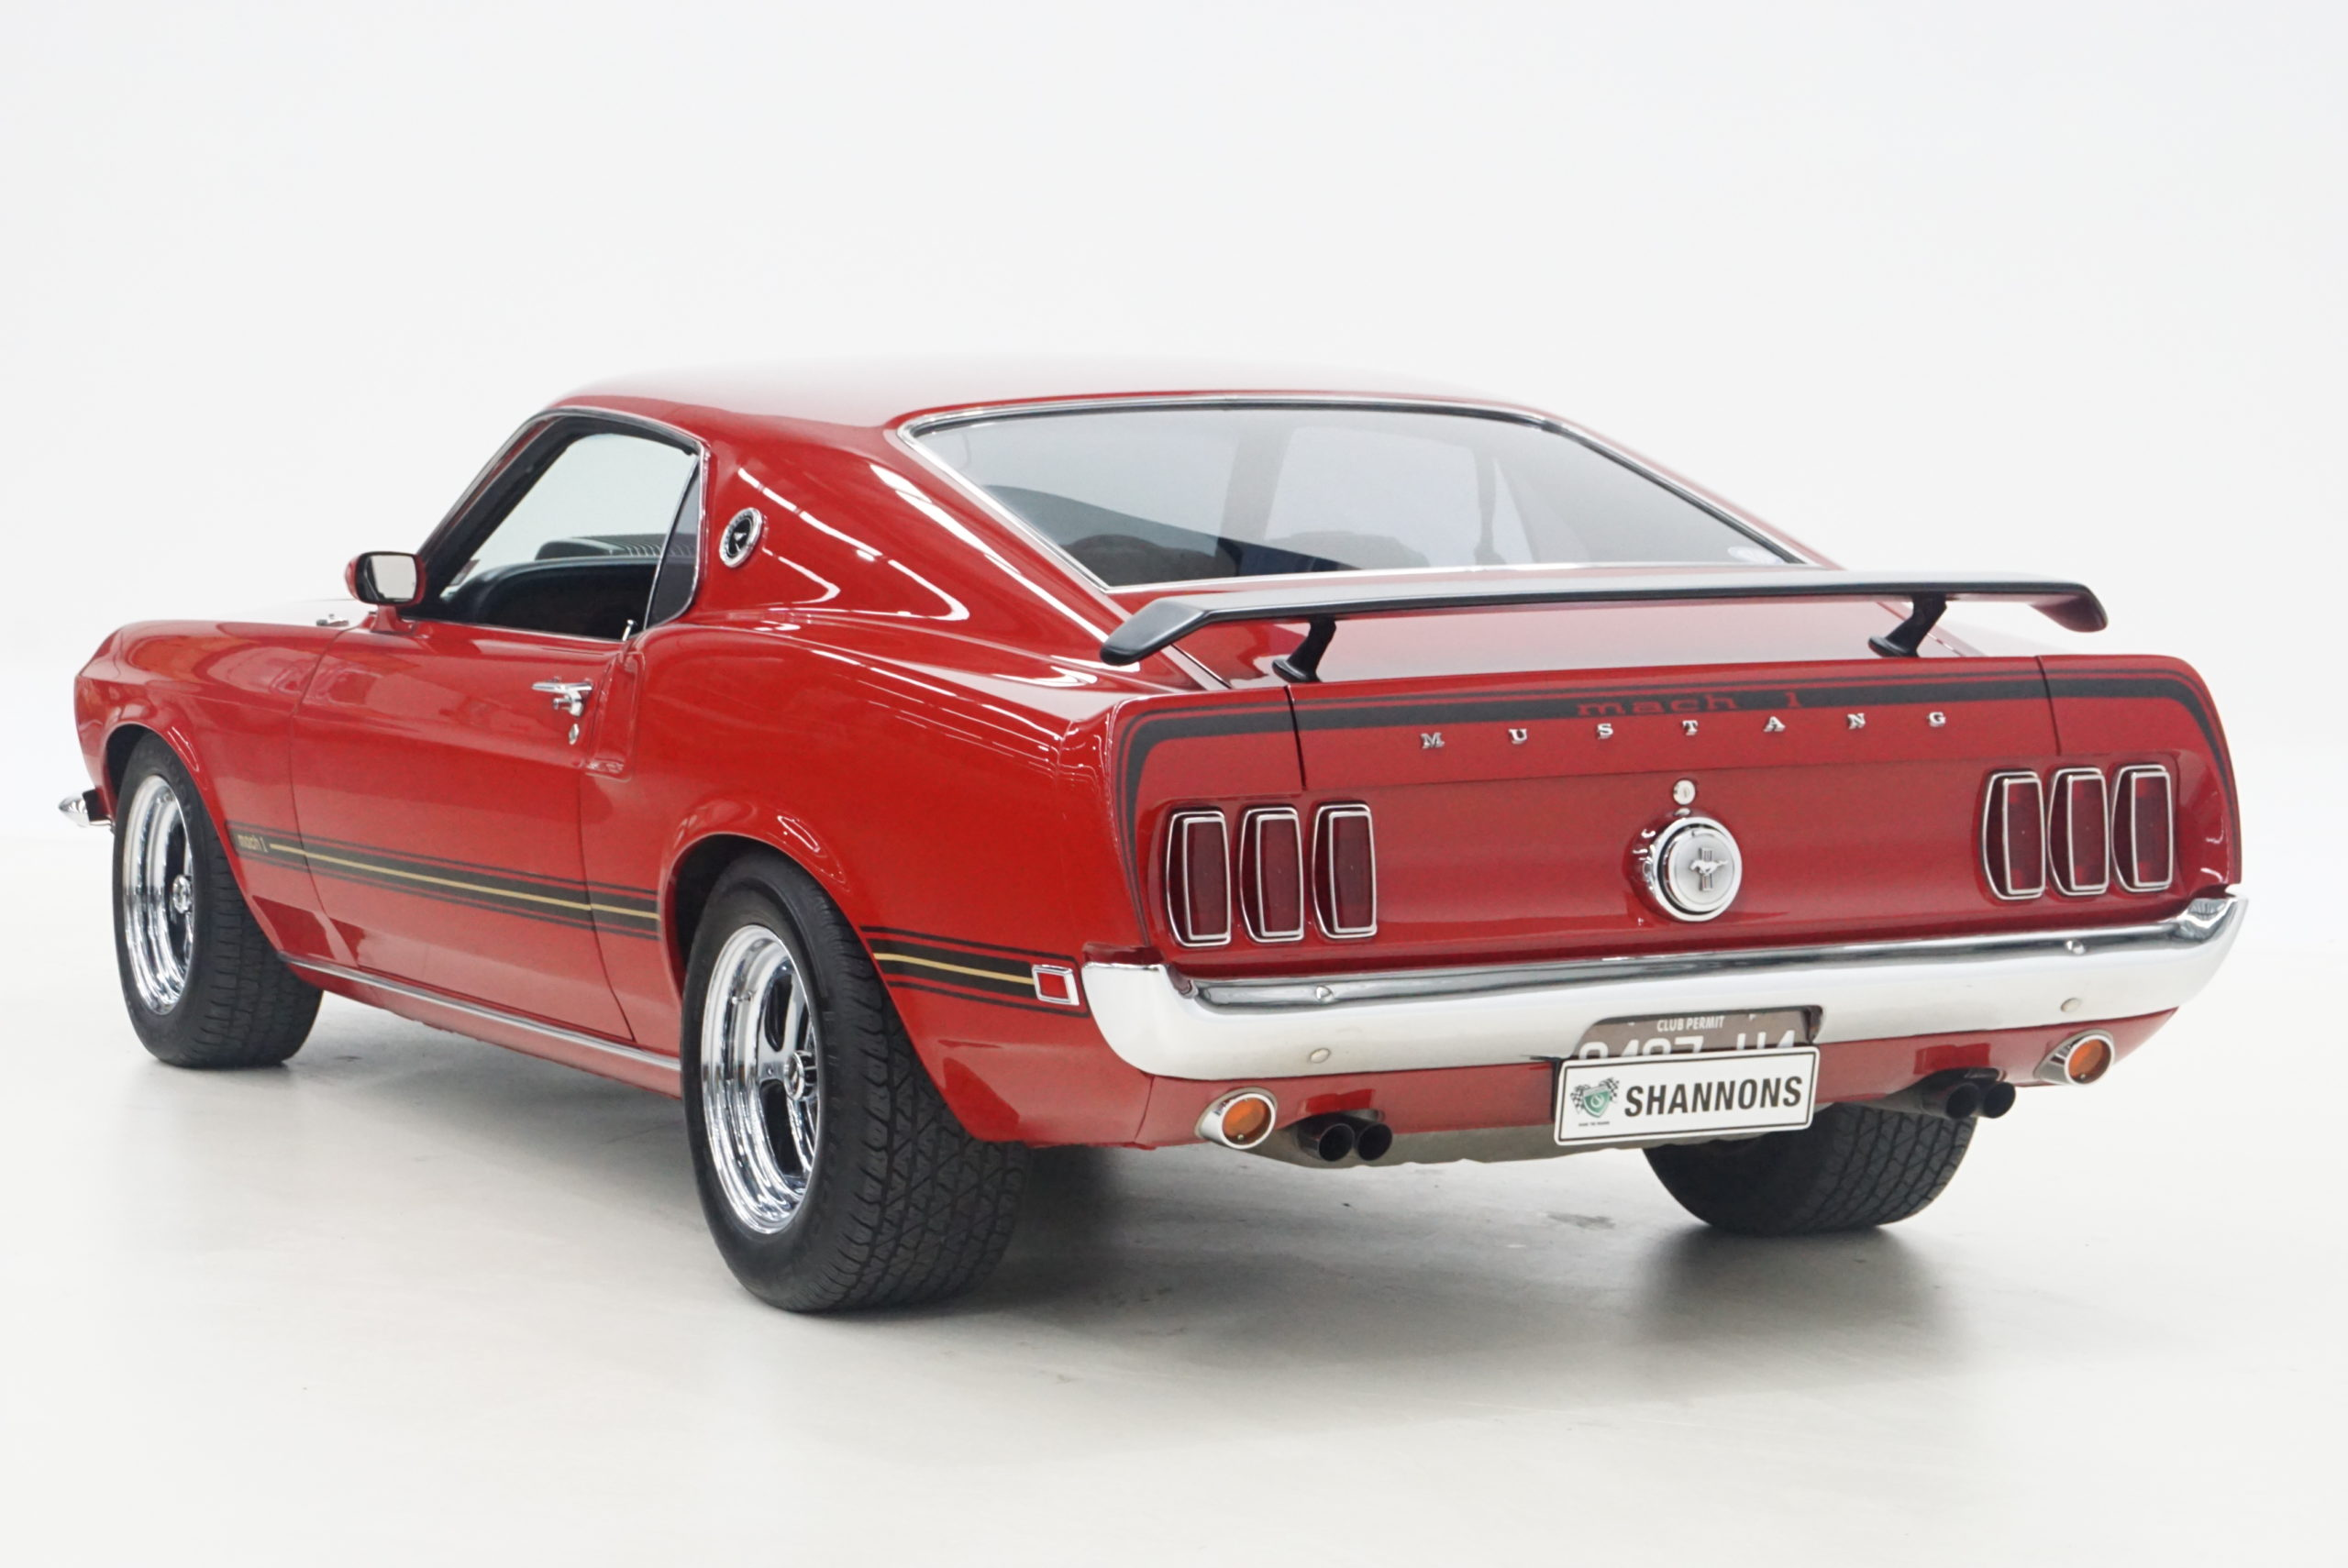 1969 Ford Mustang Mach 1 Fastback trois quarts arrière gauche - Shannons Auctions avril 2021.